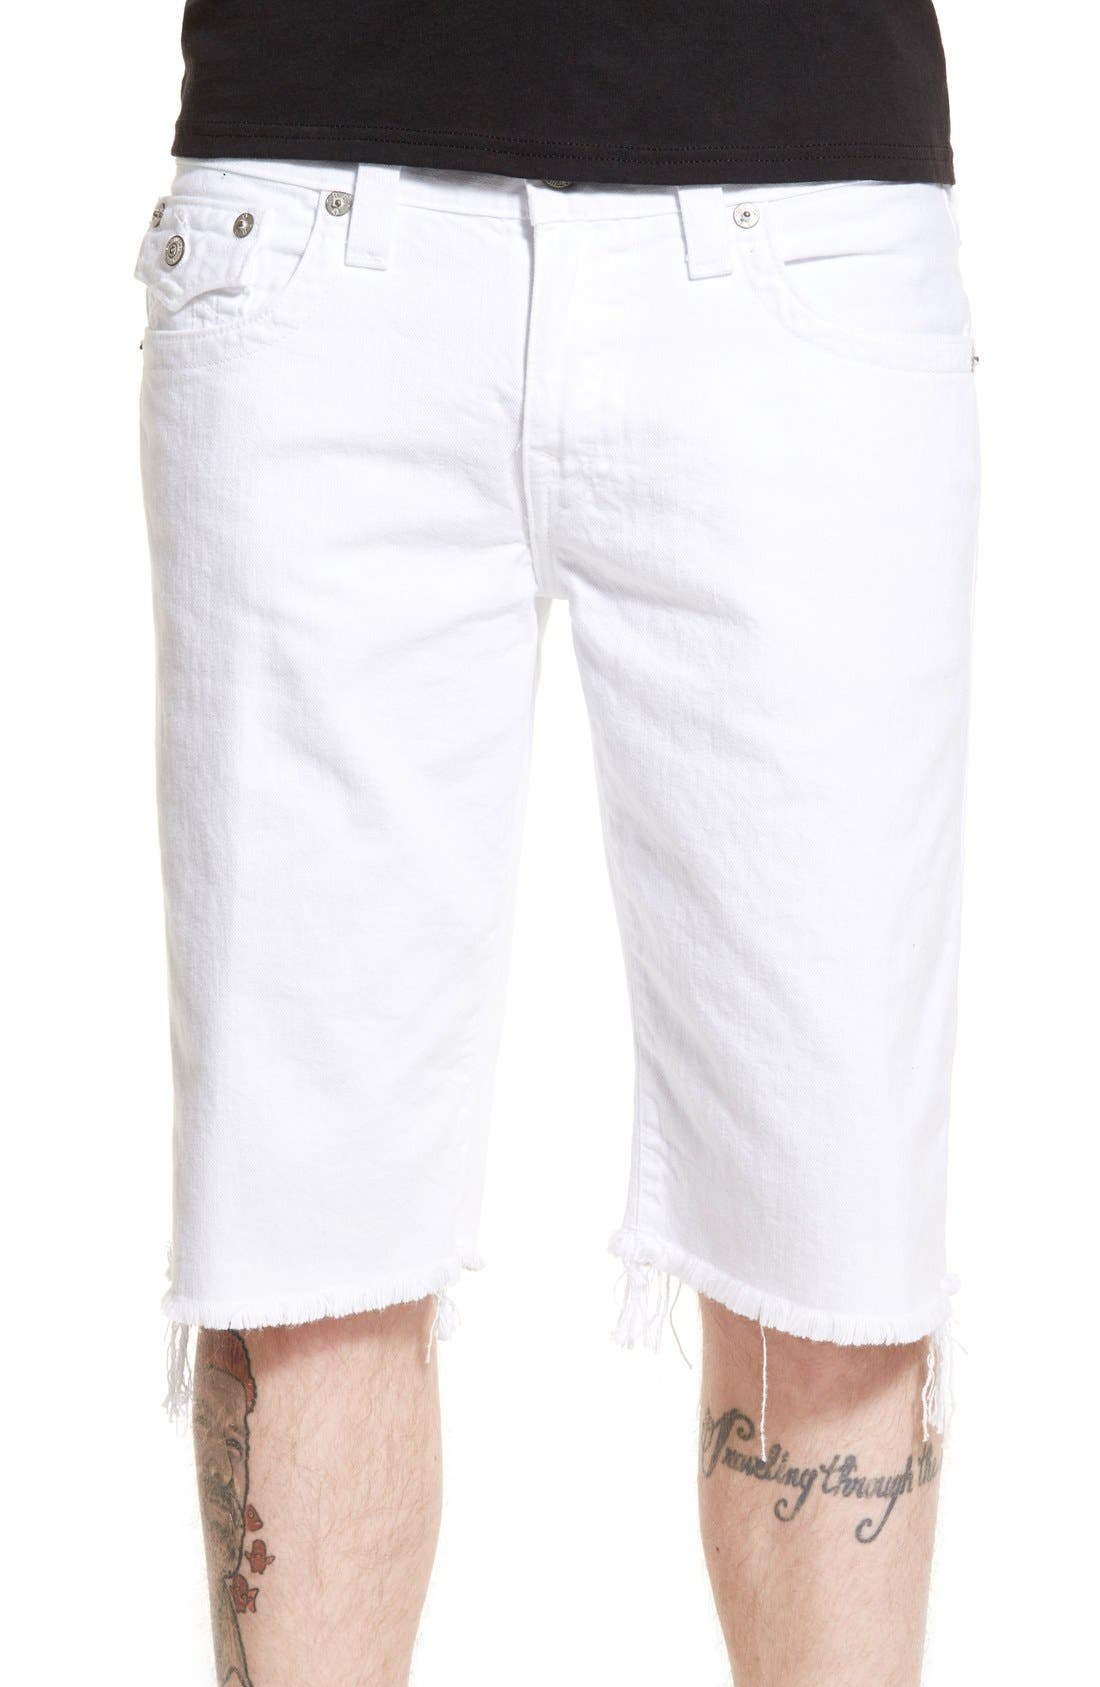 True Religion Brand Jeans 'Ricky' Cutoff Denim Shorts (Optic White)